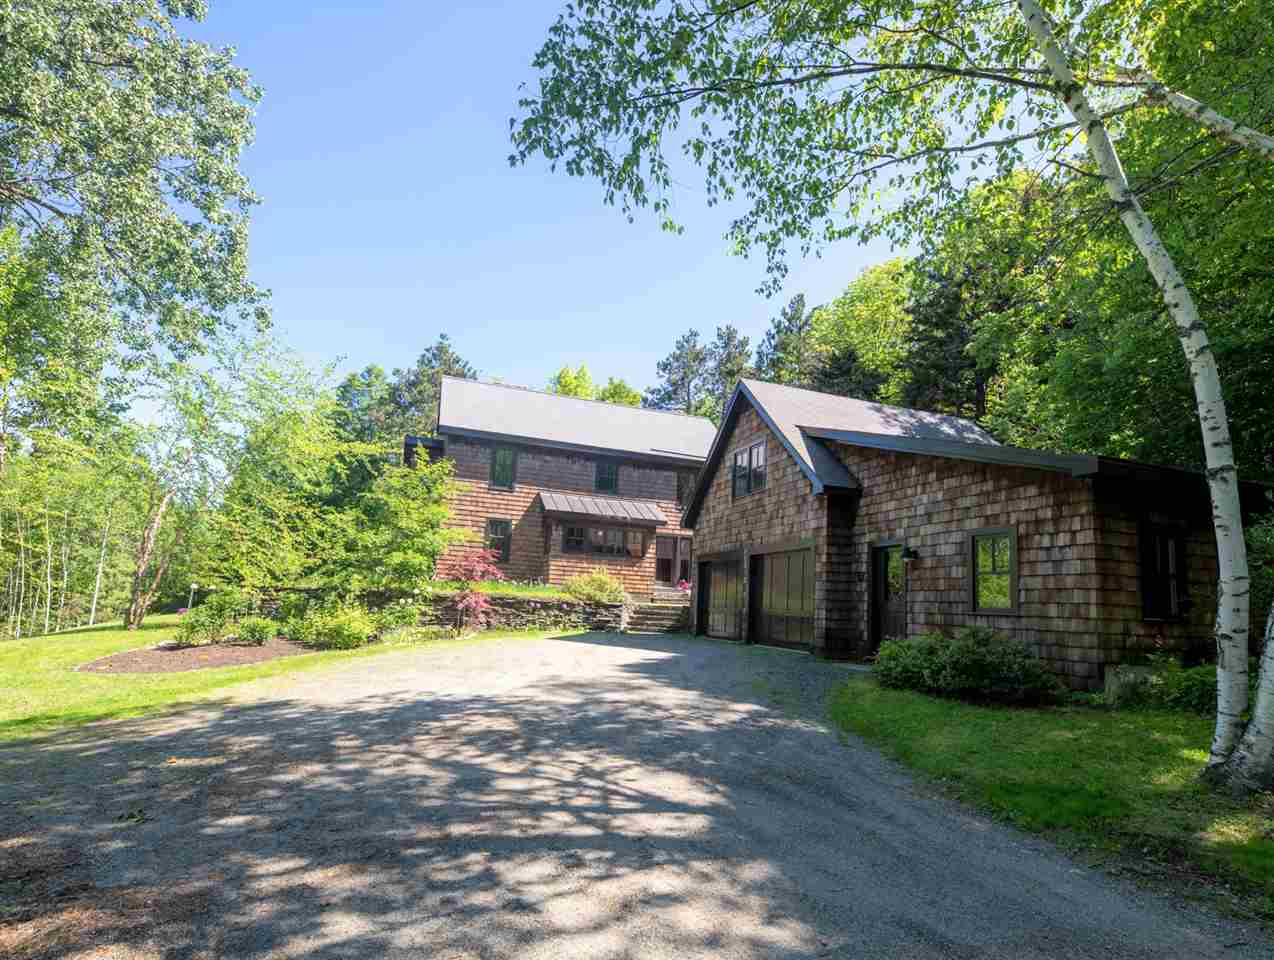 MLS 4758738: 3057 Church Hill Road, Woodstock VT